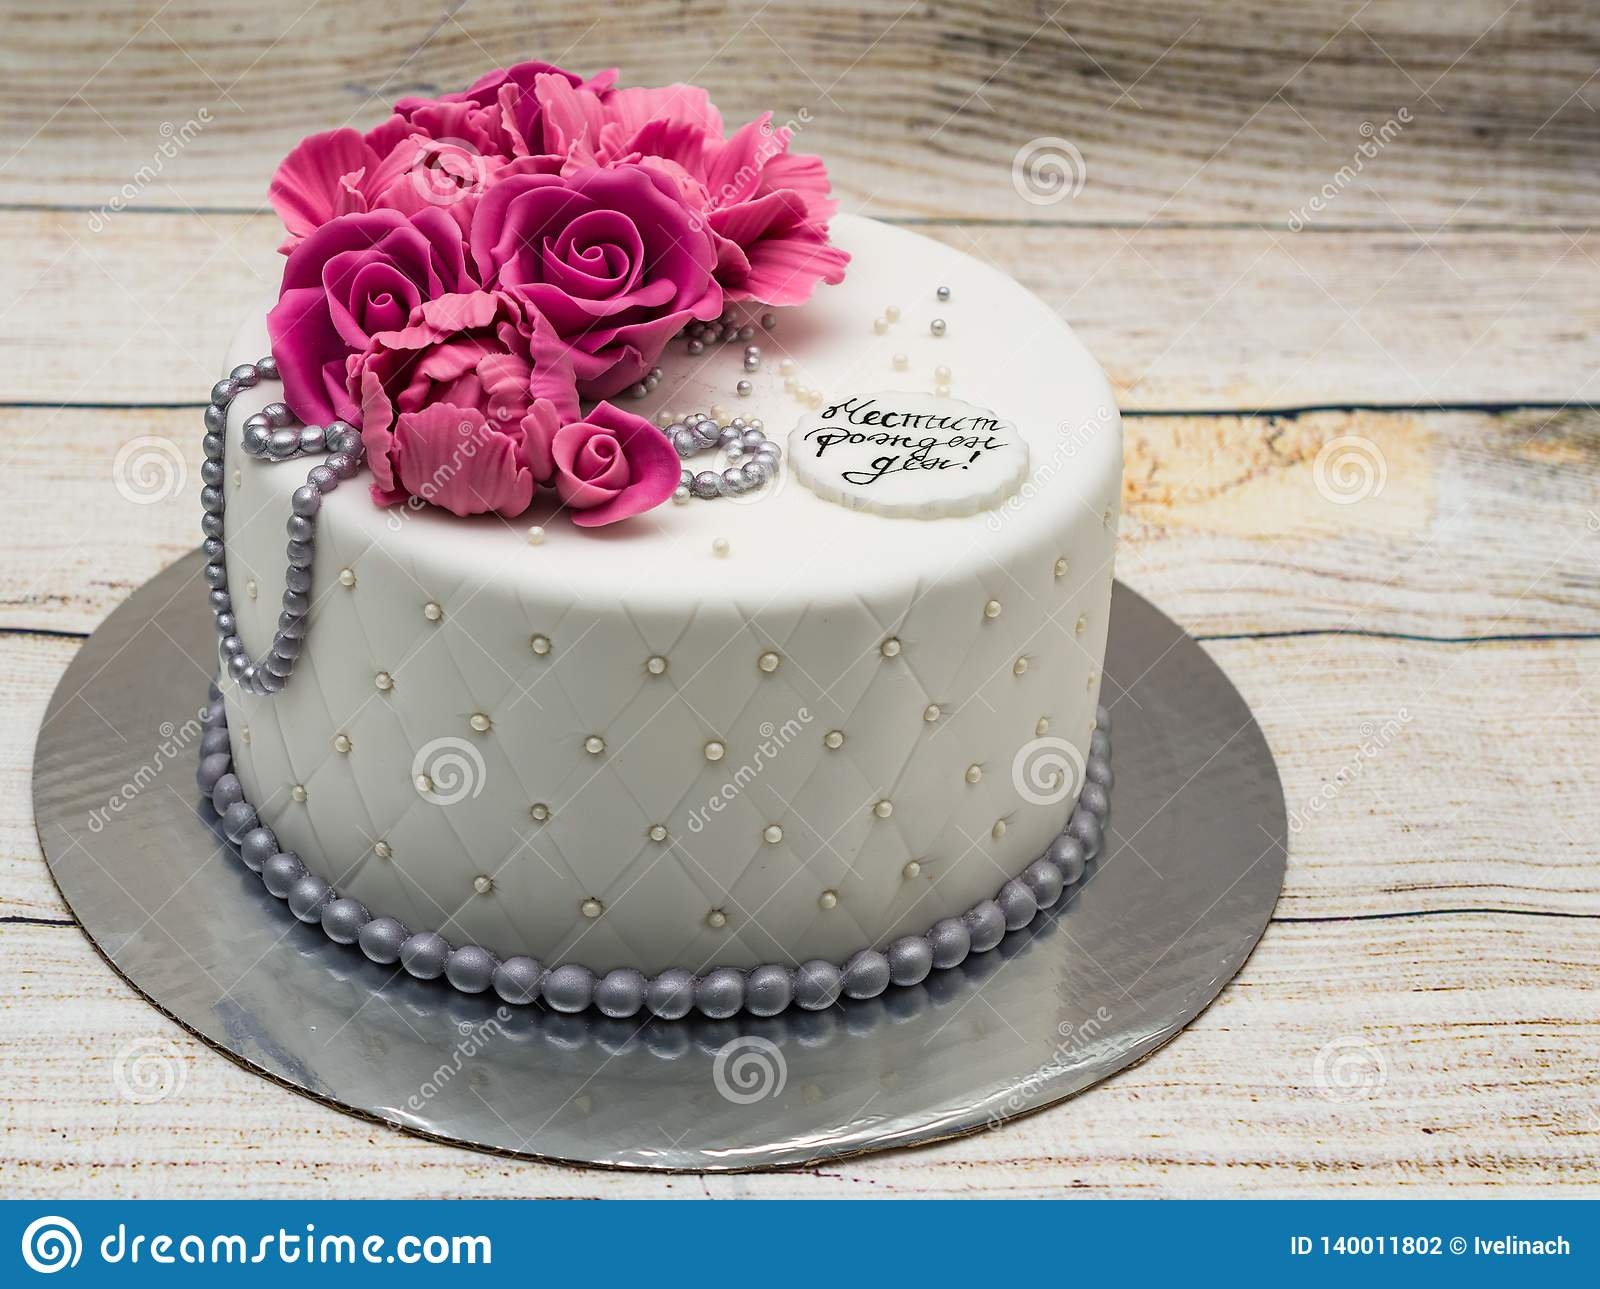 Birthday Cake With Fondant Flowers Roses And Peonies And Silver